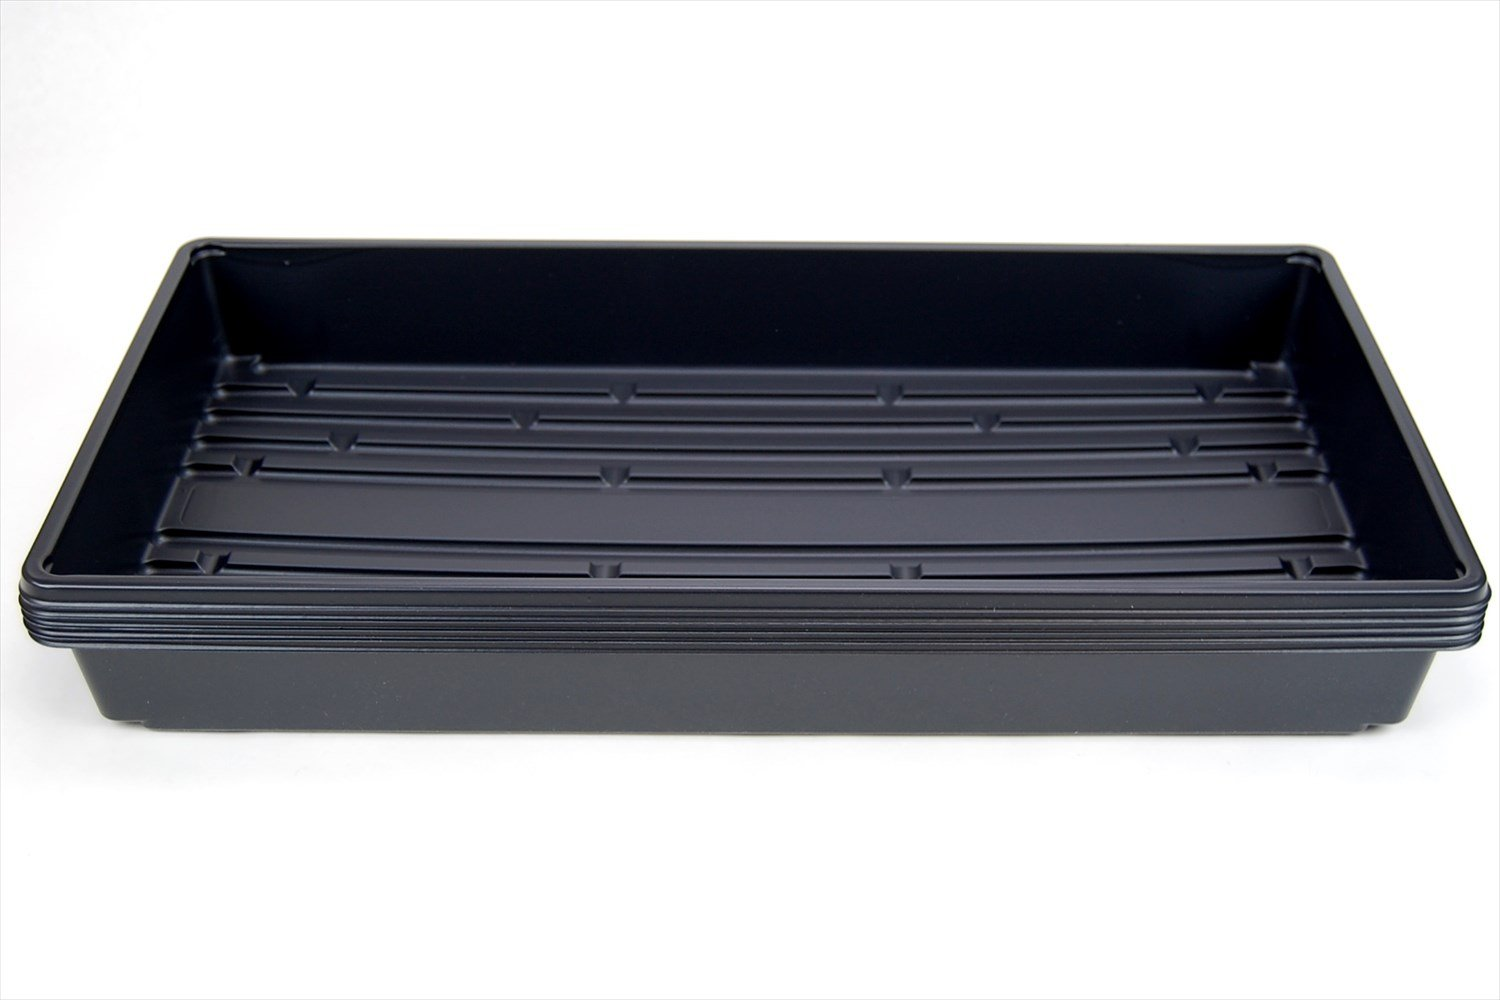 "5 Pack of Durable Black Plastic Growing Trays (Without Drain Holes) 21"" X 11"" X 2"" - Flowers, Seedlings, Plants, Wheatgrass, Microgreens & More"